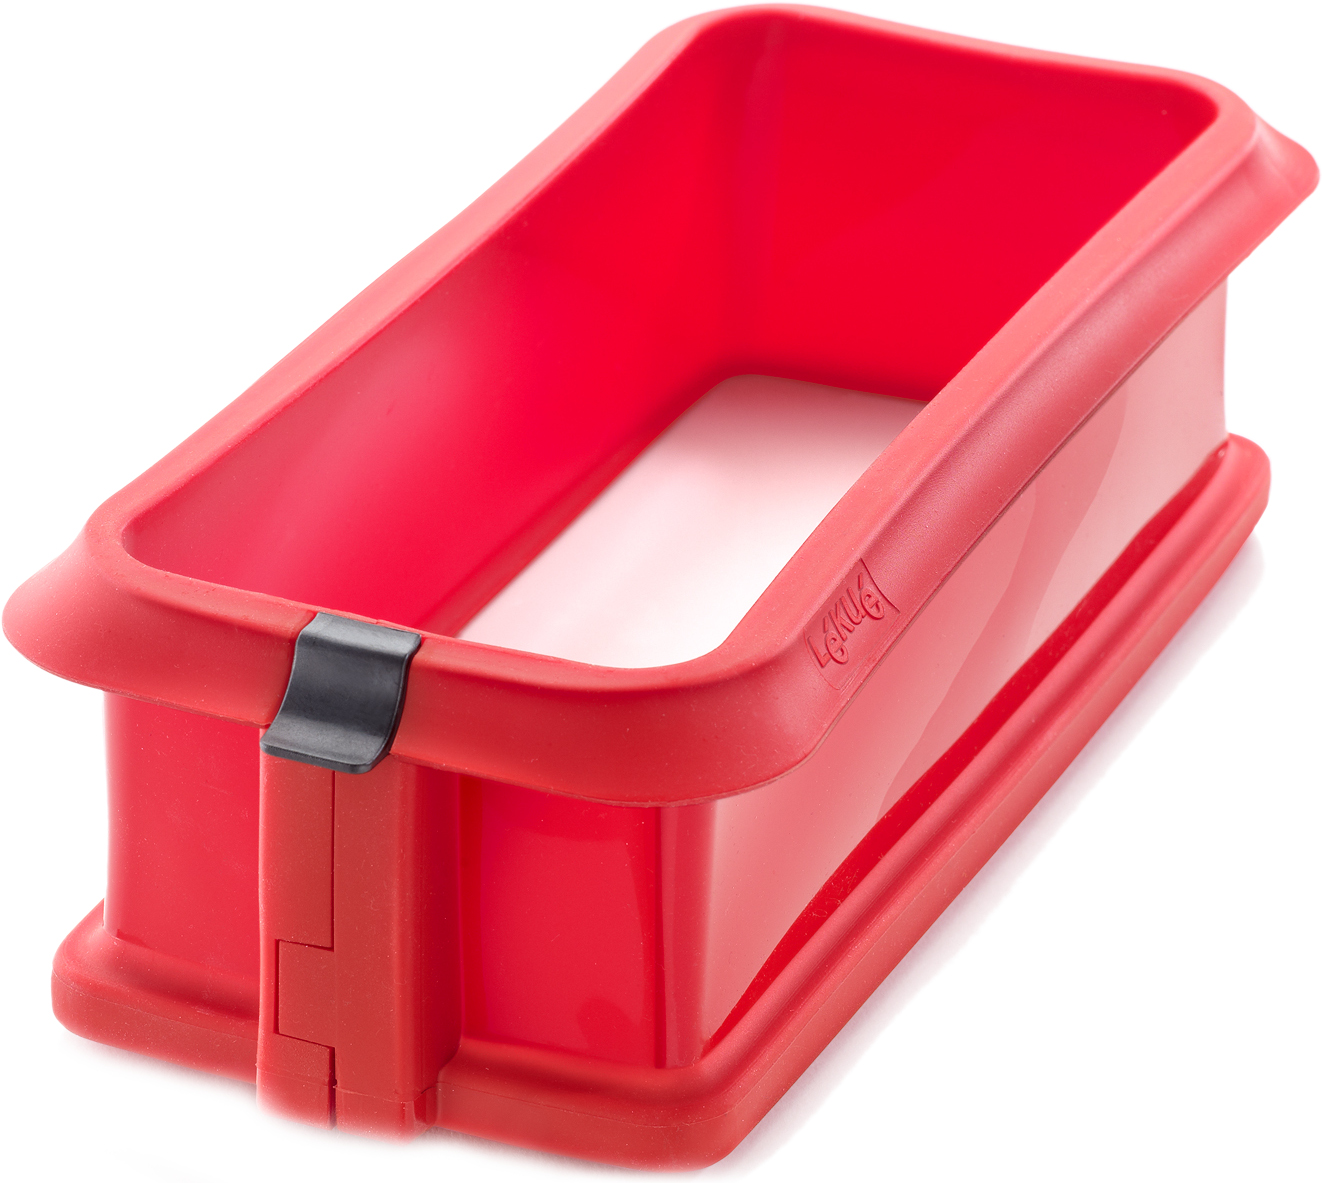 Lekue Red Silicone Loaf Springform Pan with Ceramic Plate